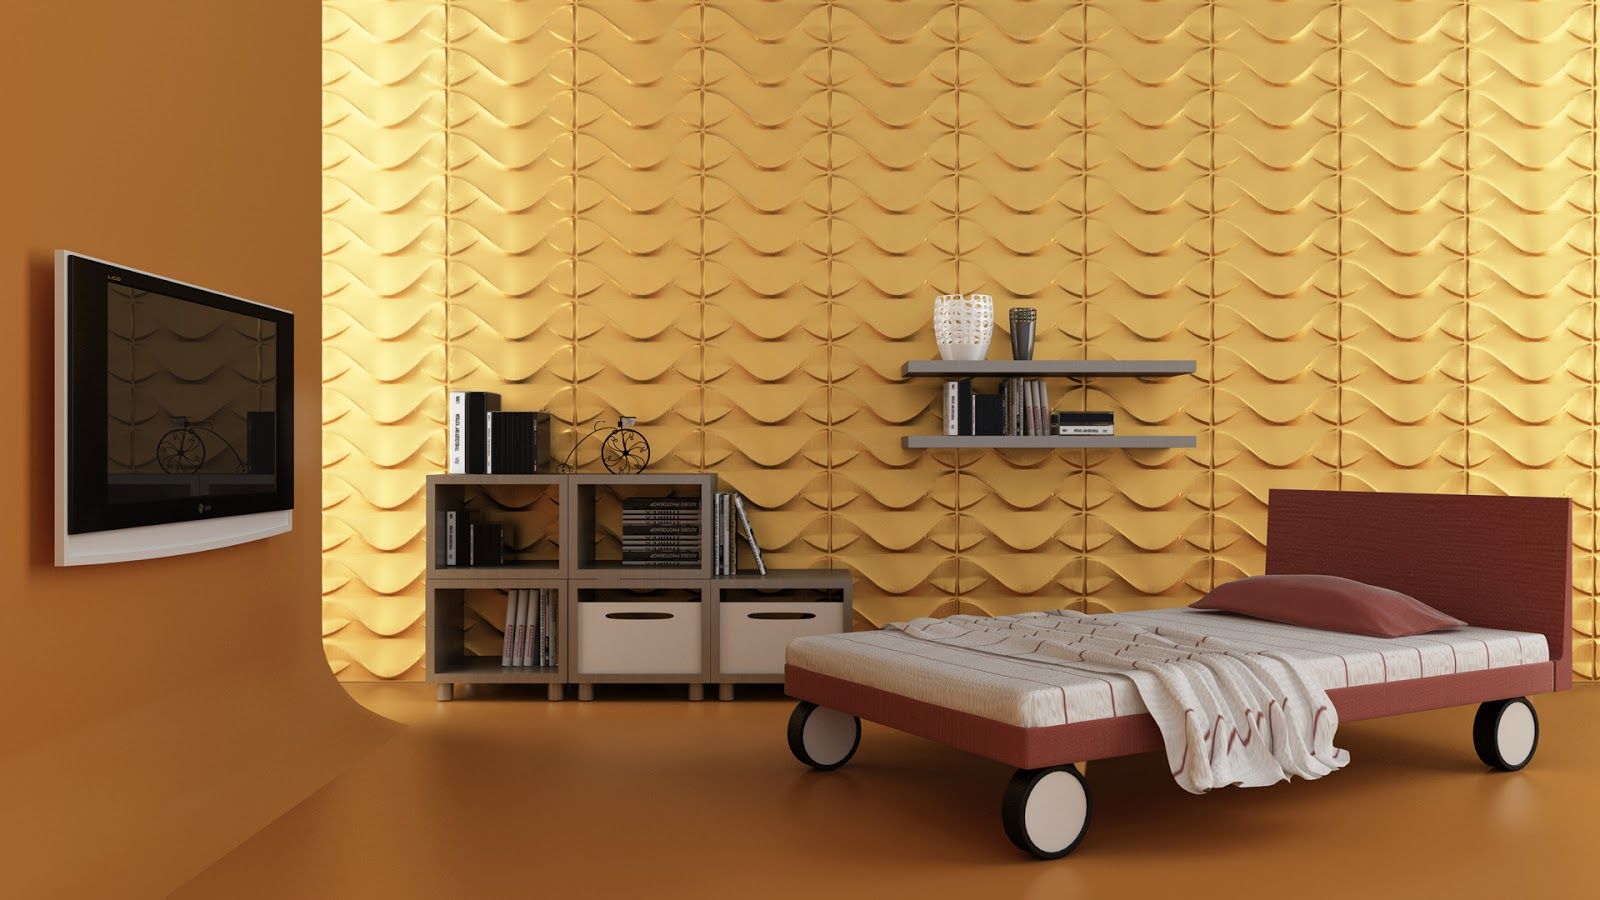 Modern and decorative 3d wall panels for unique wall art decor 3d bedroom wall art design with mosaic paneling amipublicfo Choice Image